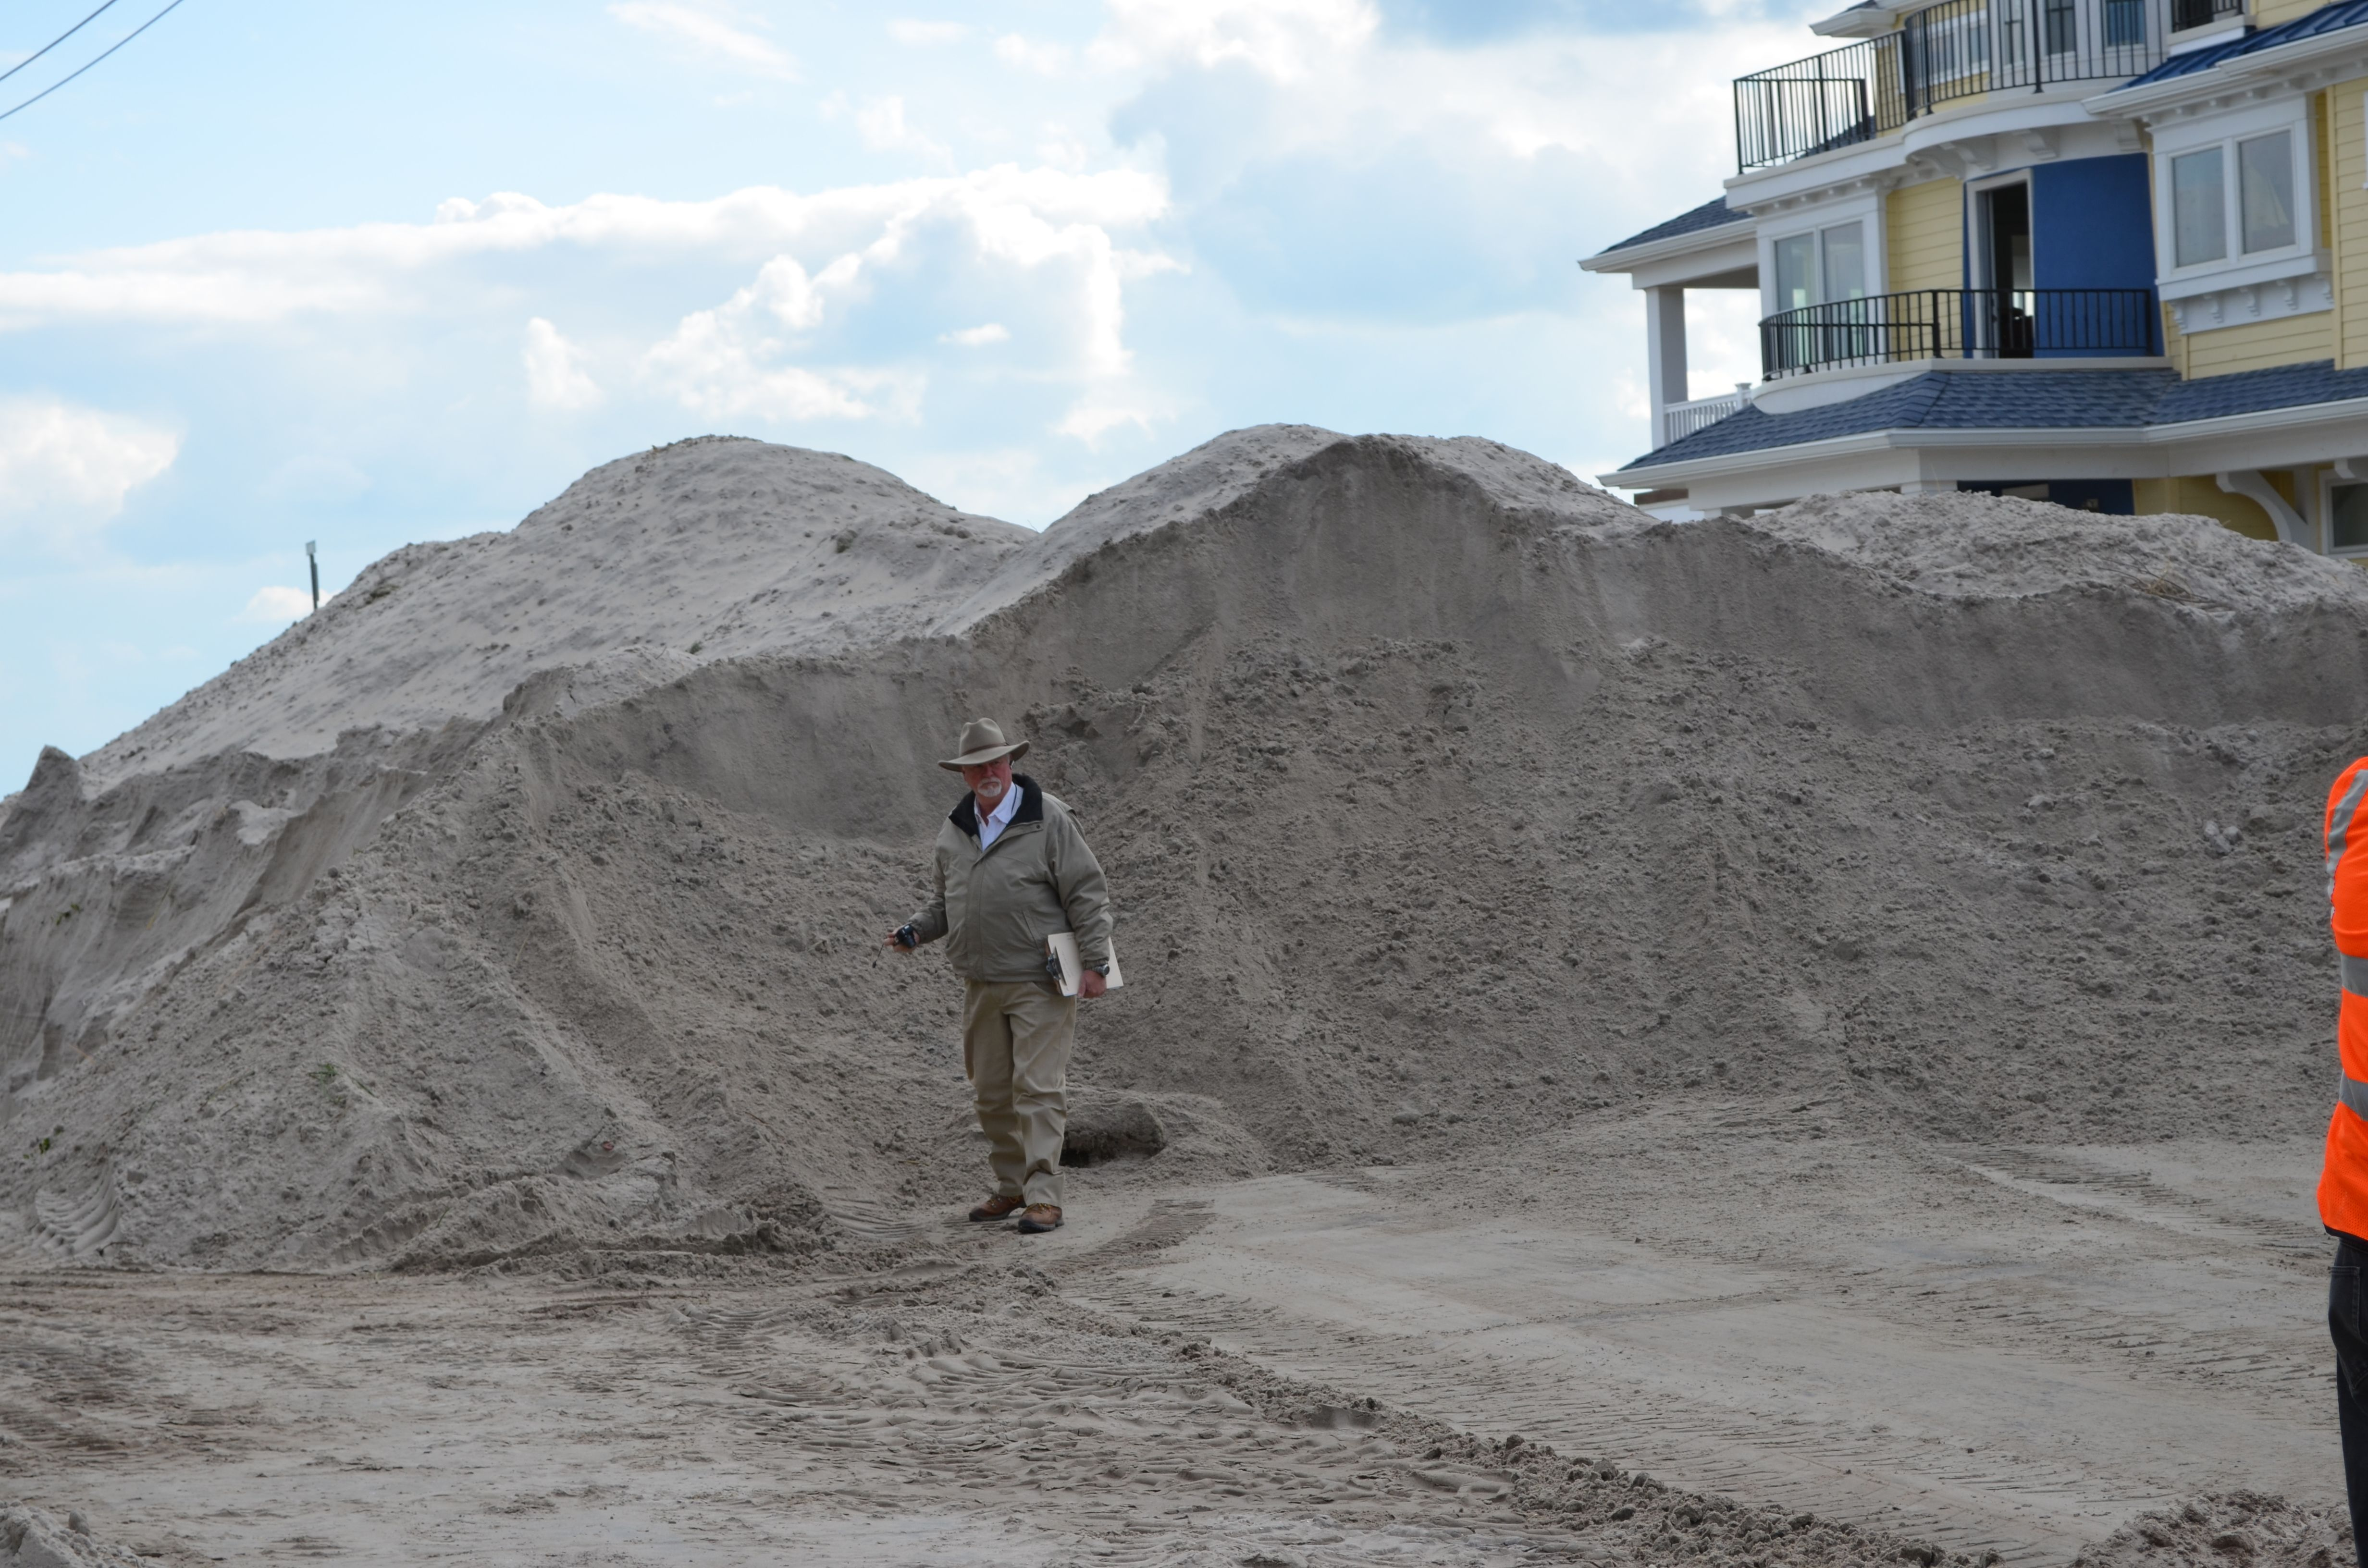 Sandy was very Sandy in OCNJ.  Mound of sand pile the streets as heavy construction equipment is being utilized to move the sand and build temporary barriers from future storms.